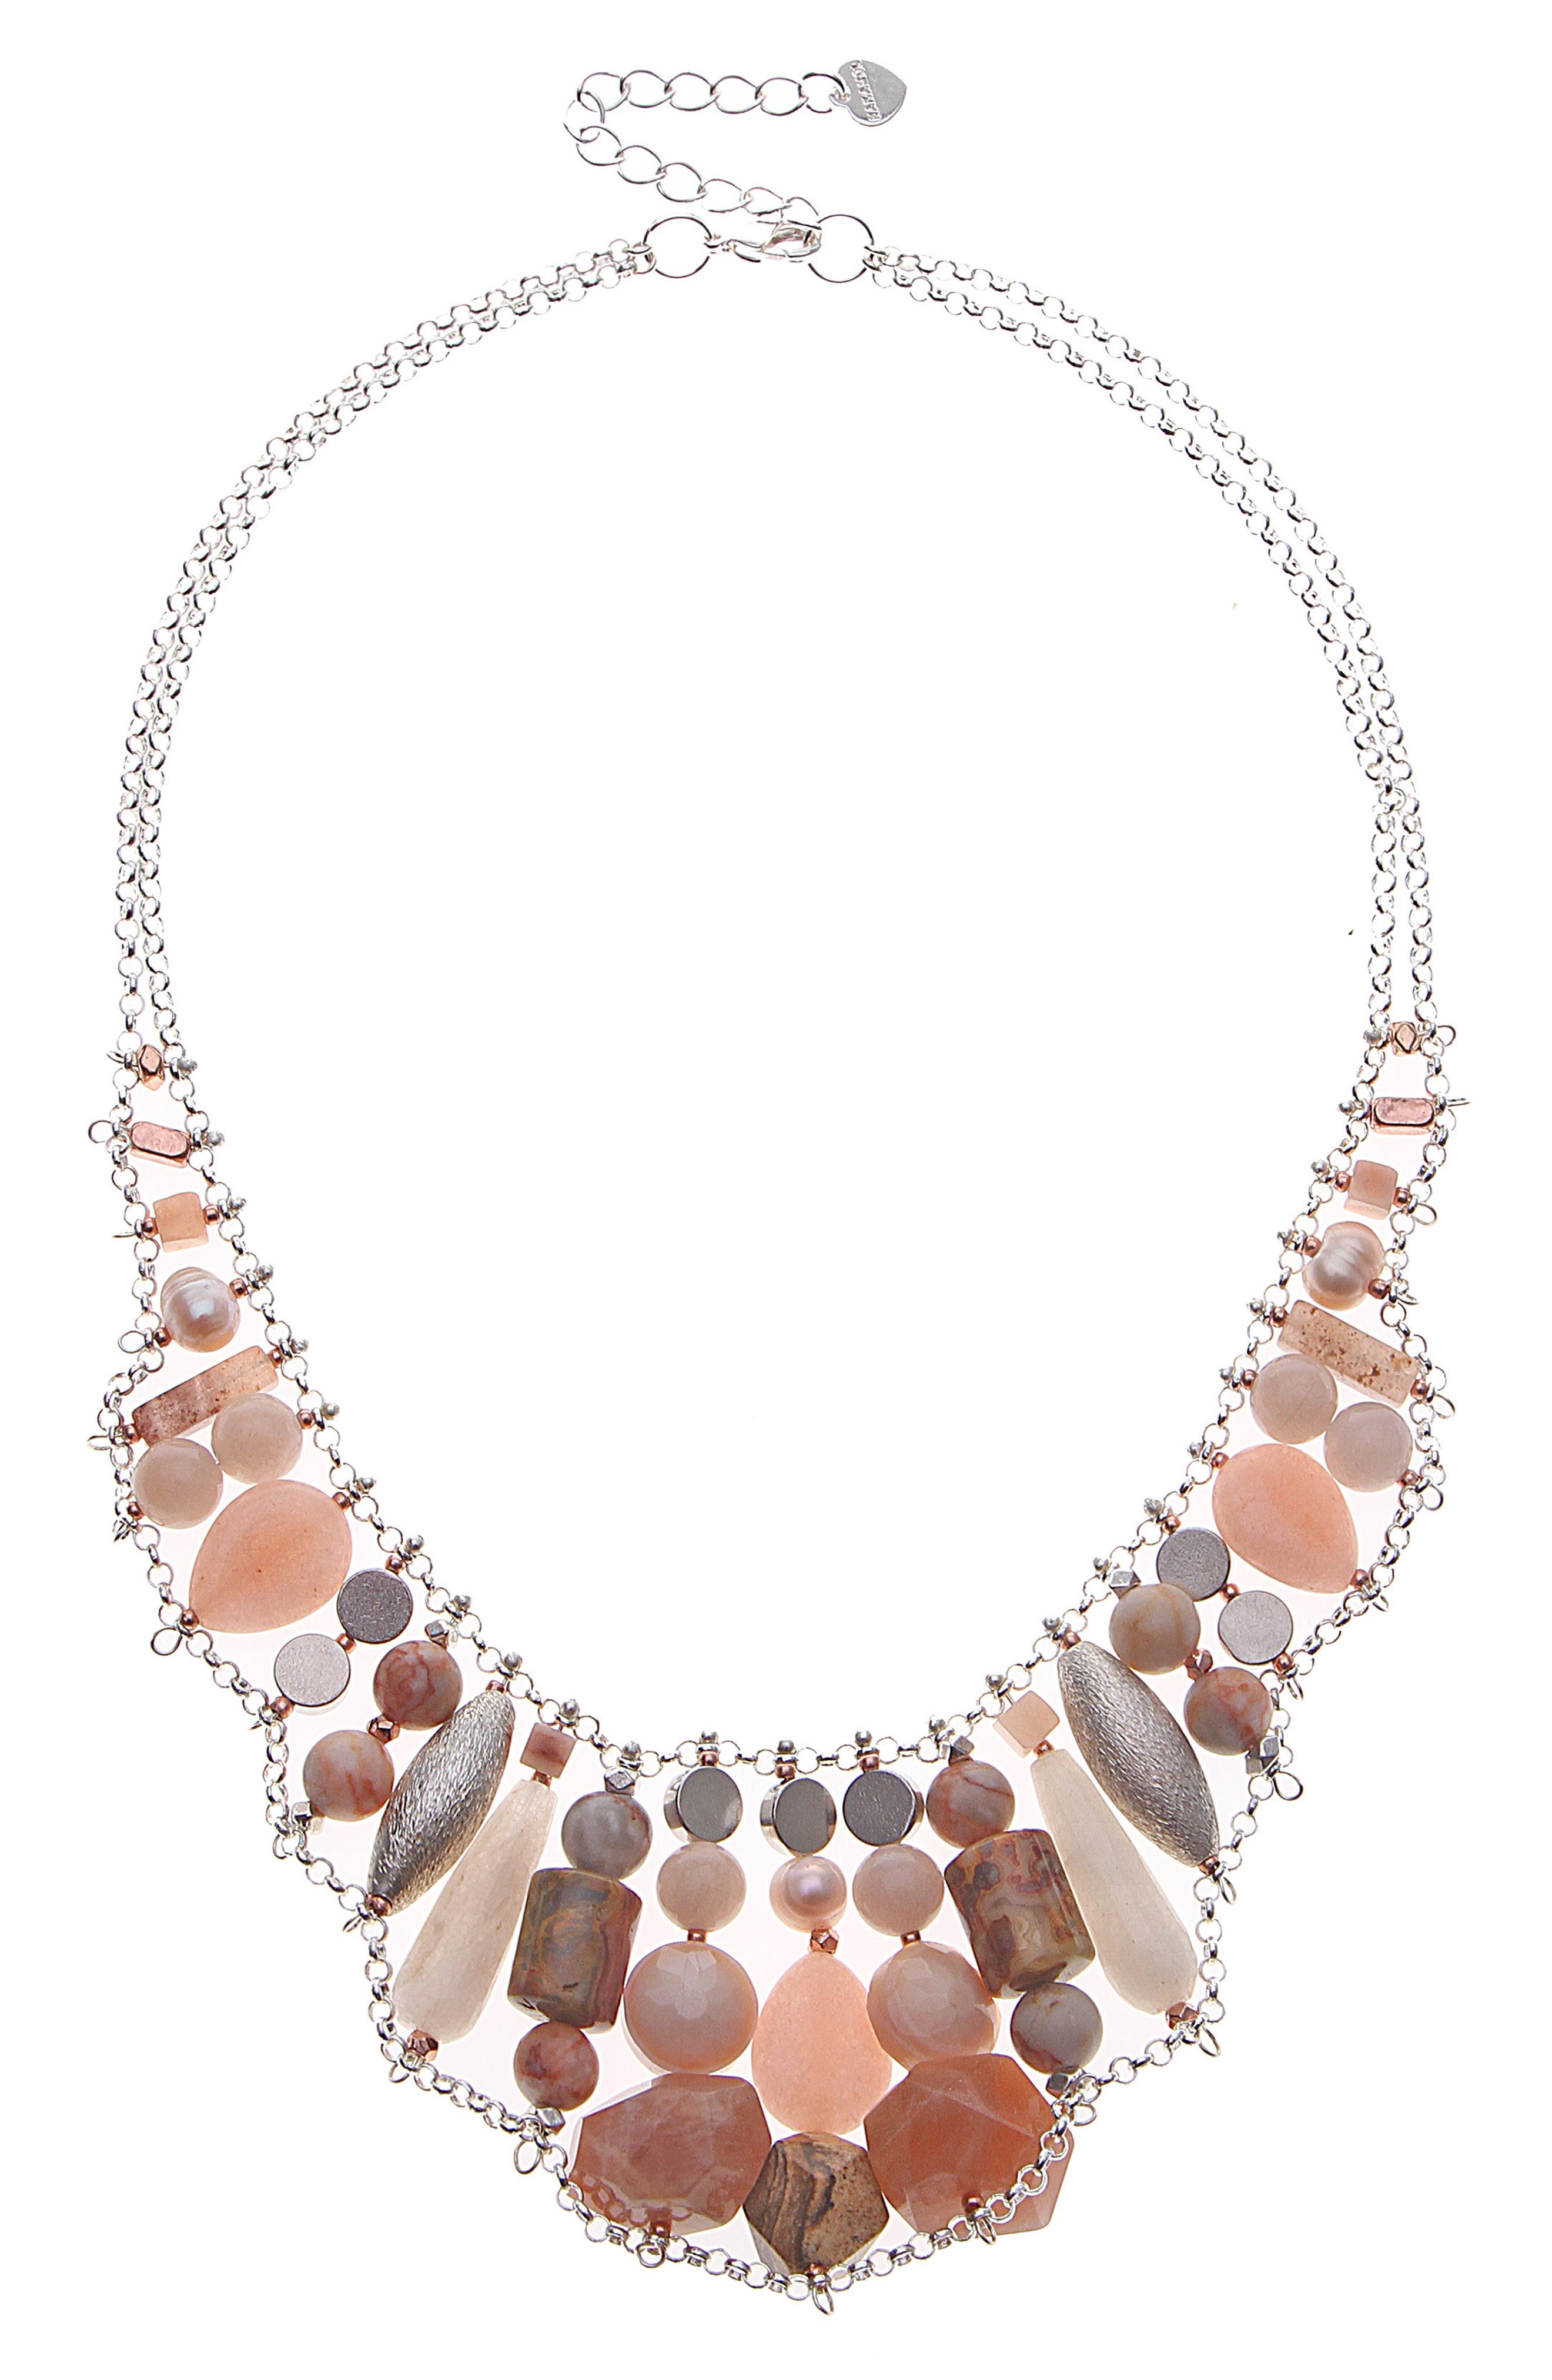 Stone & Freshwater Pearl Collar Necklace,                         Main,                         color, 250